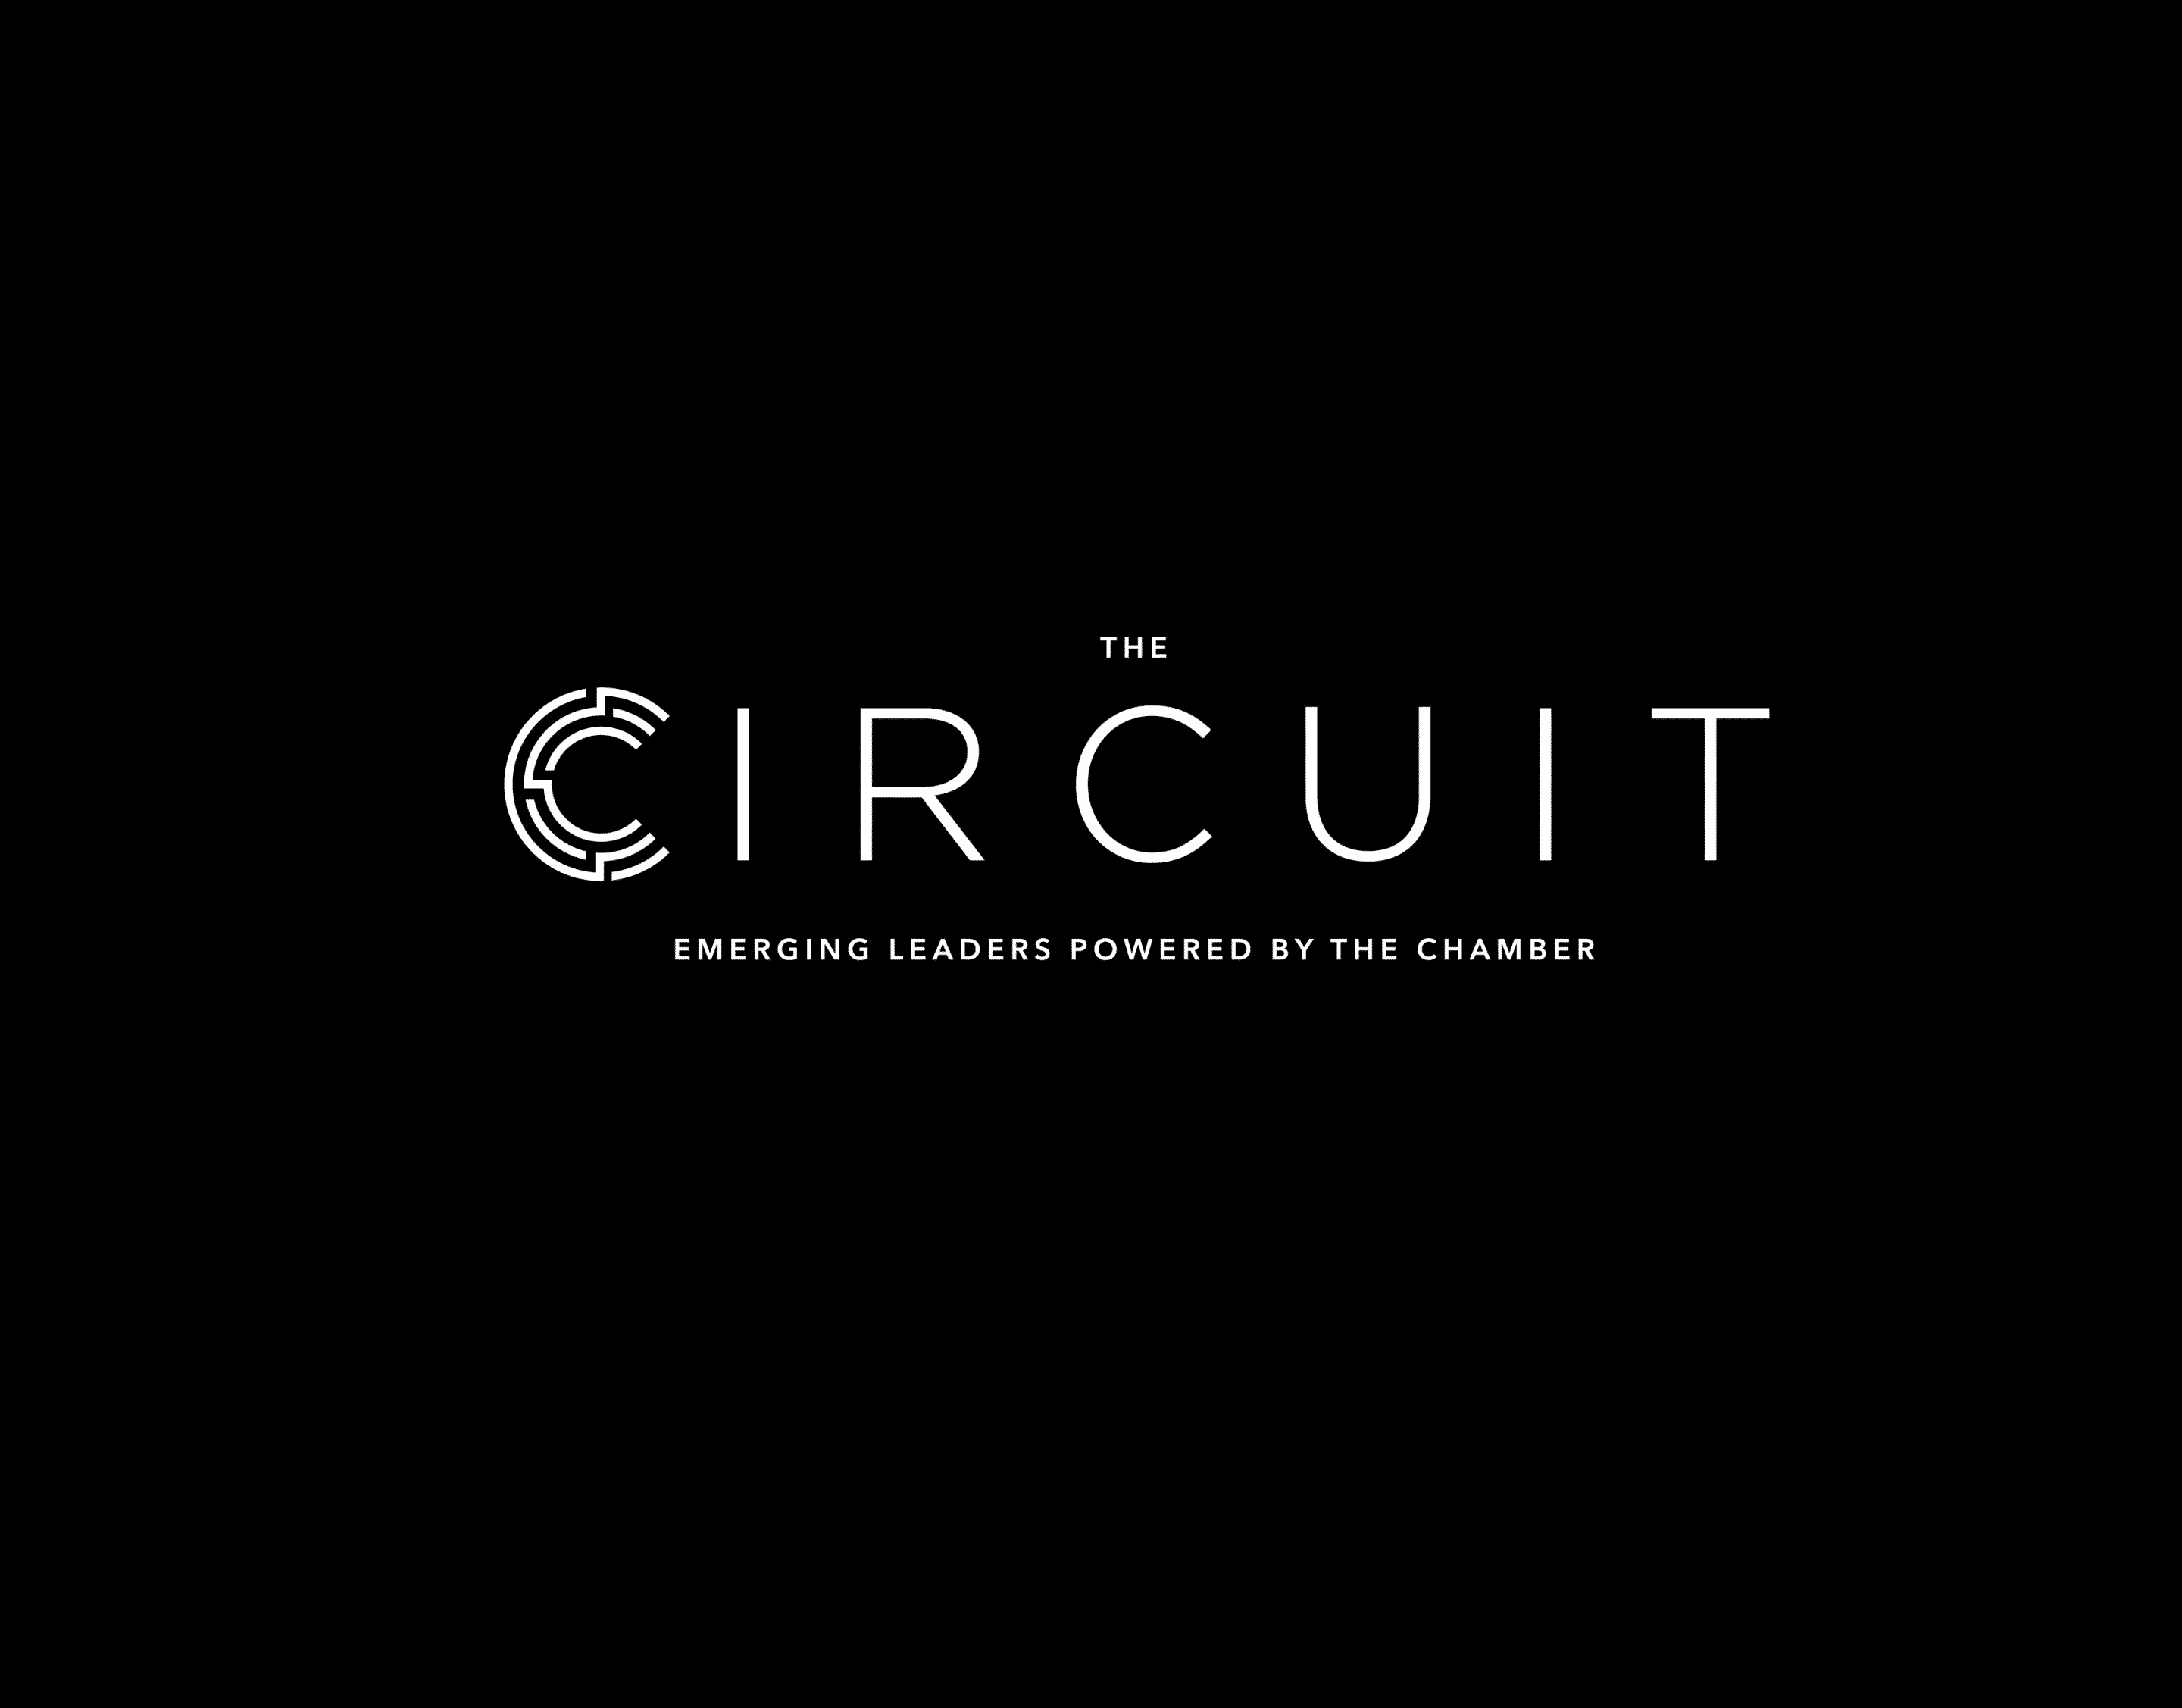 The Circuit - Emerging Leaders